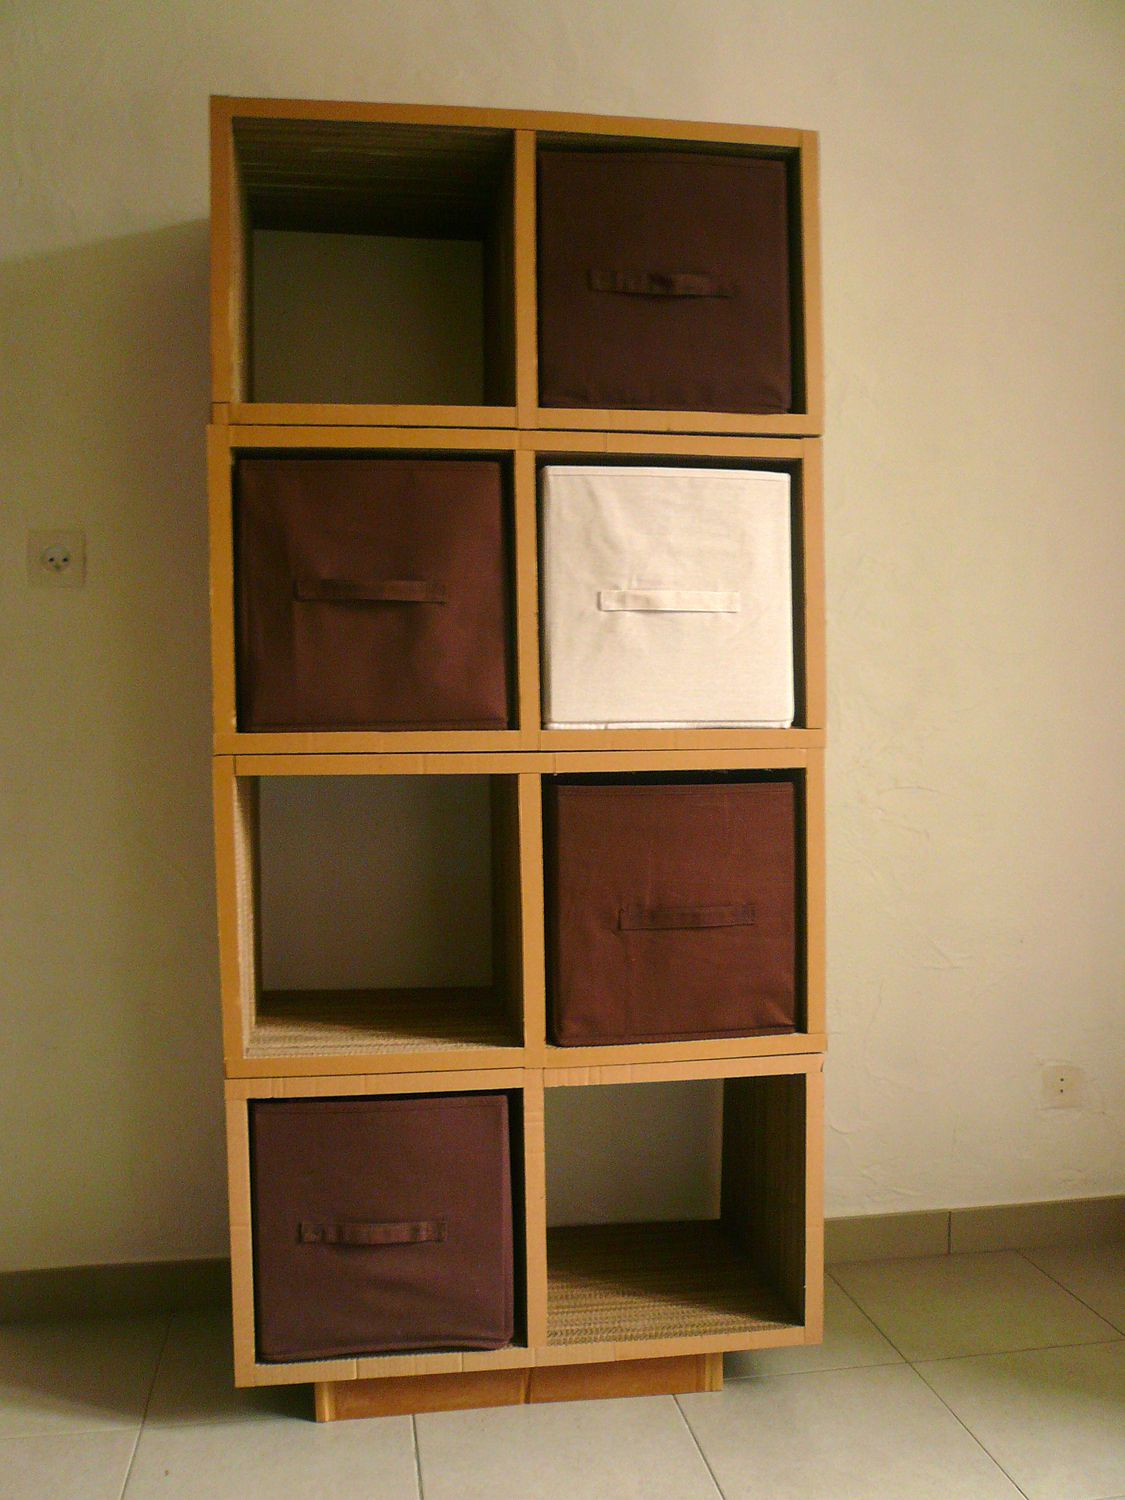 Customiser meuble ikea cube sammlung von for Meuble kallax blanc